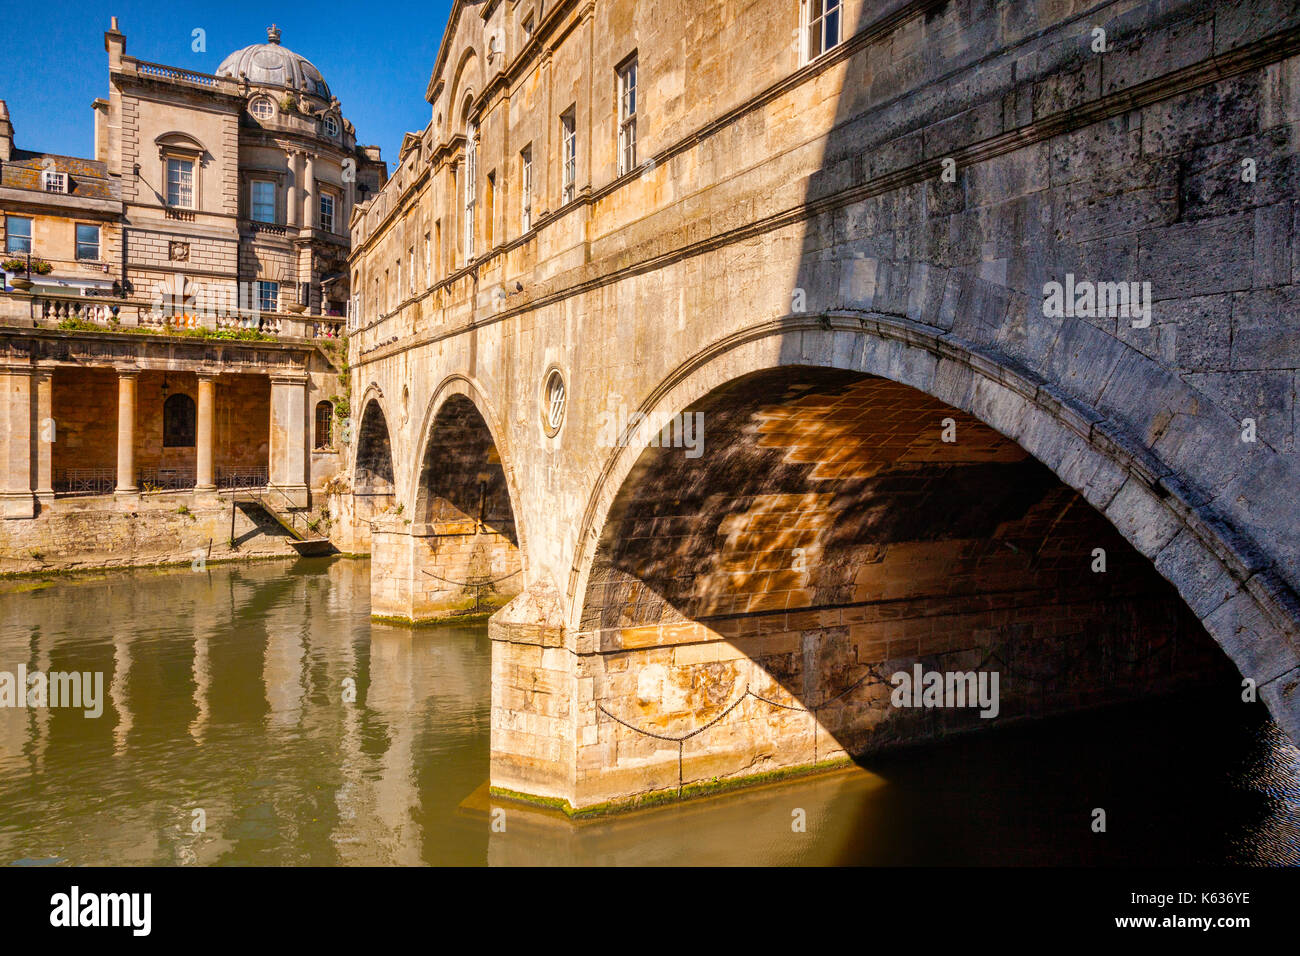 One of Bath's most famous sites, the Pulteney Bridge by Robert Adams, over the River Avon. Bath, Somerset, England, UK. - Stock Image